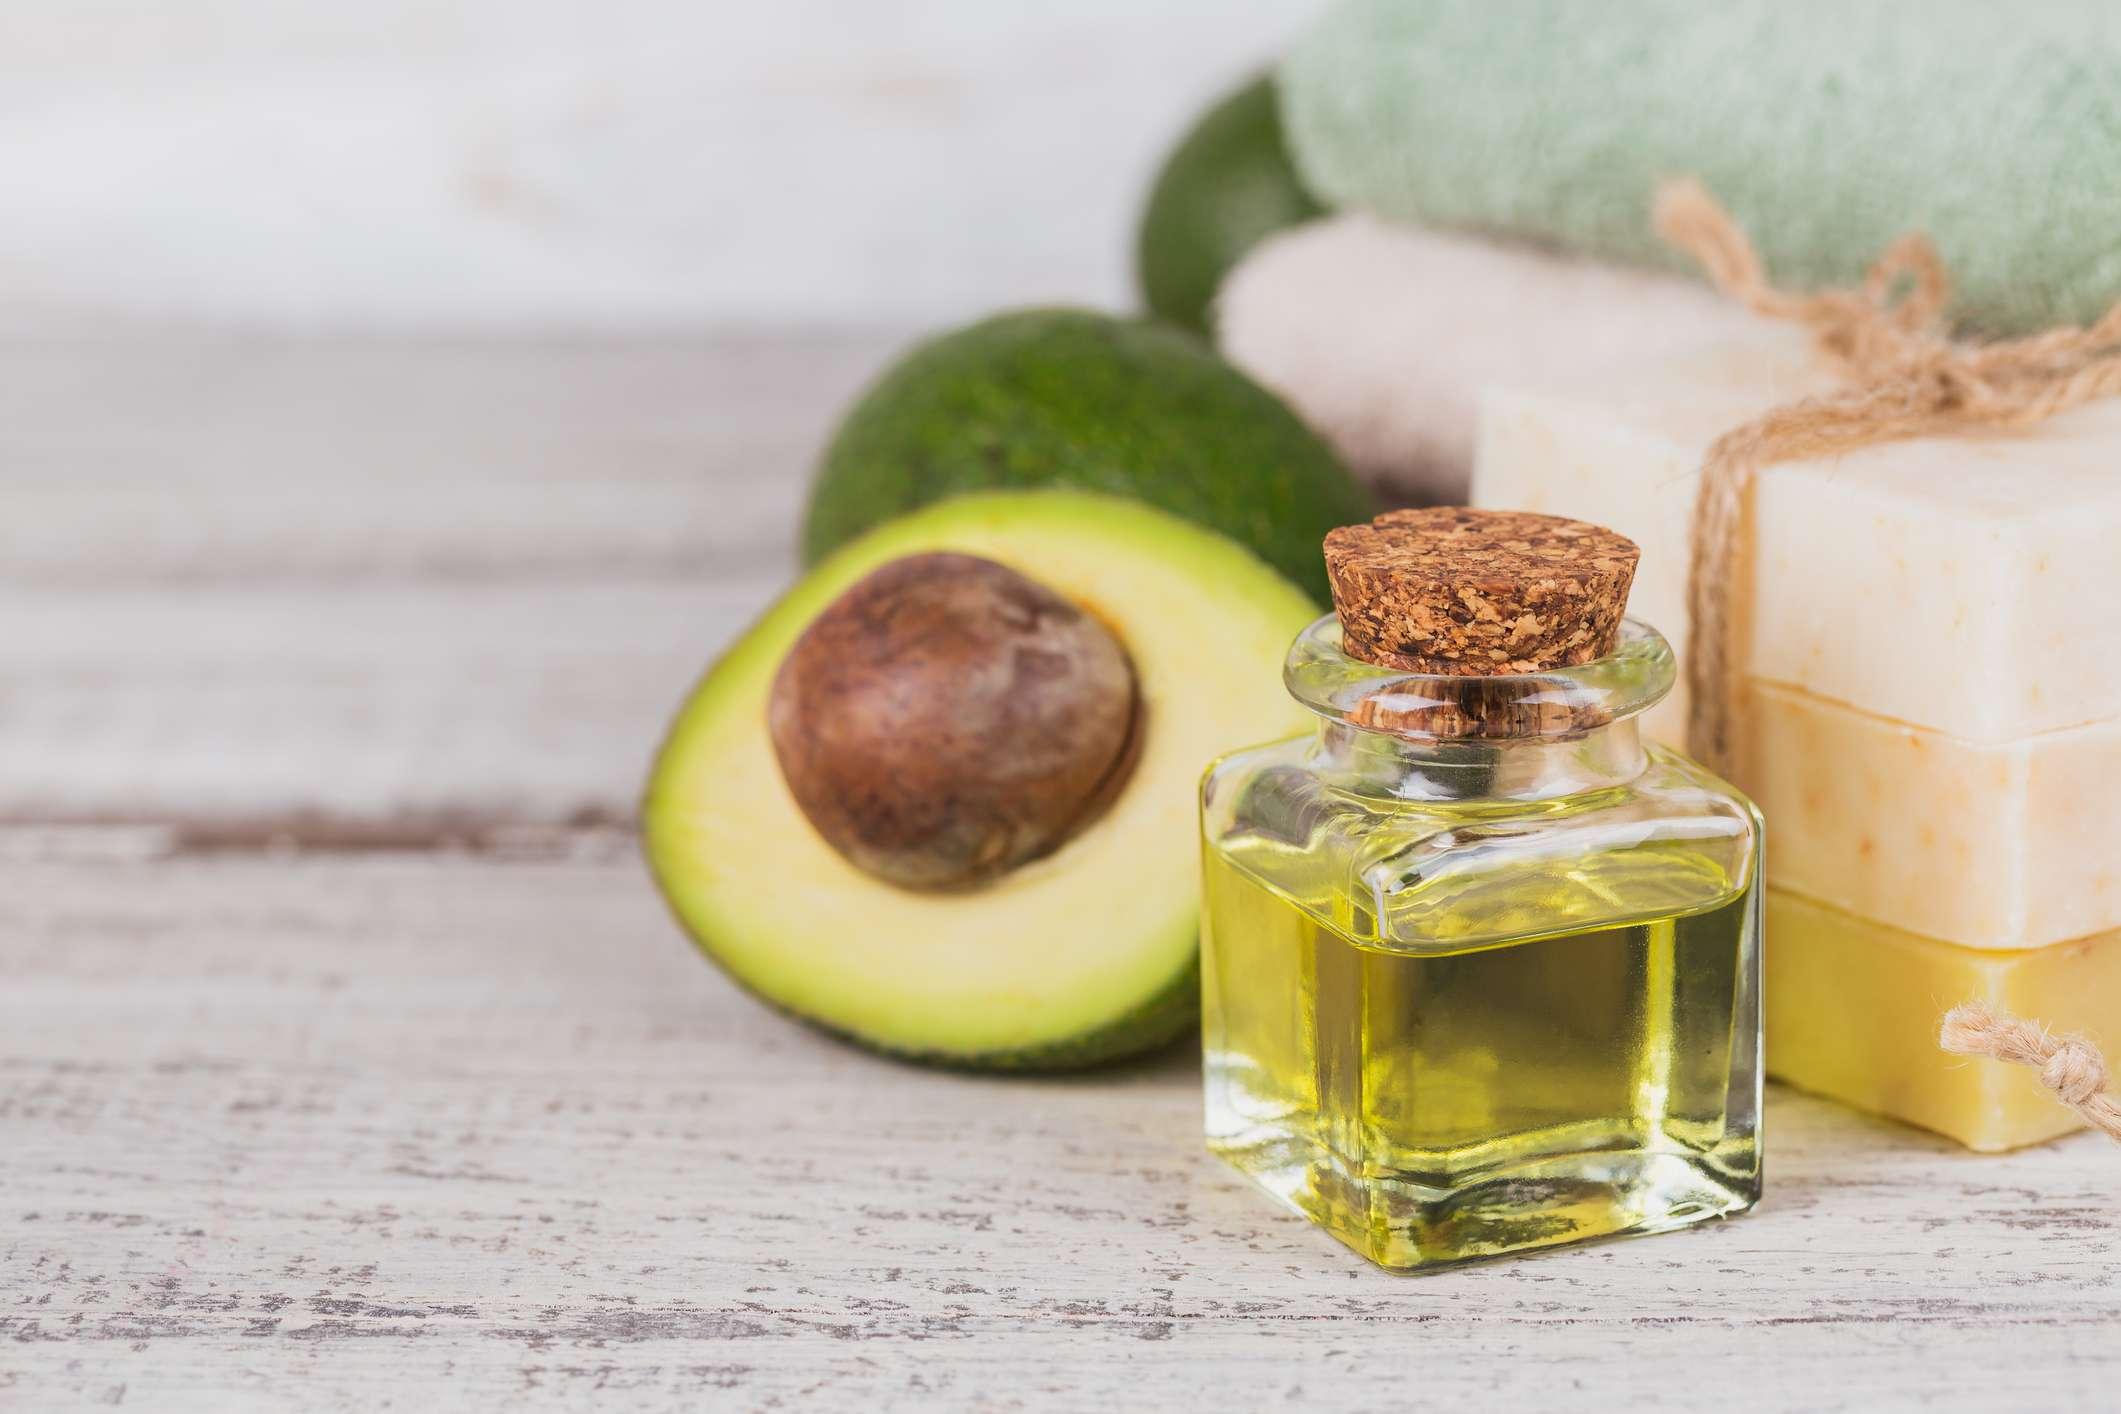 Avocado oil in a small bottle surrounded by a slice avocado and soaps.